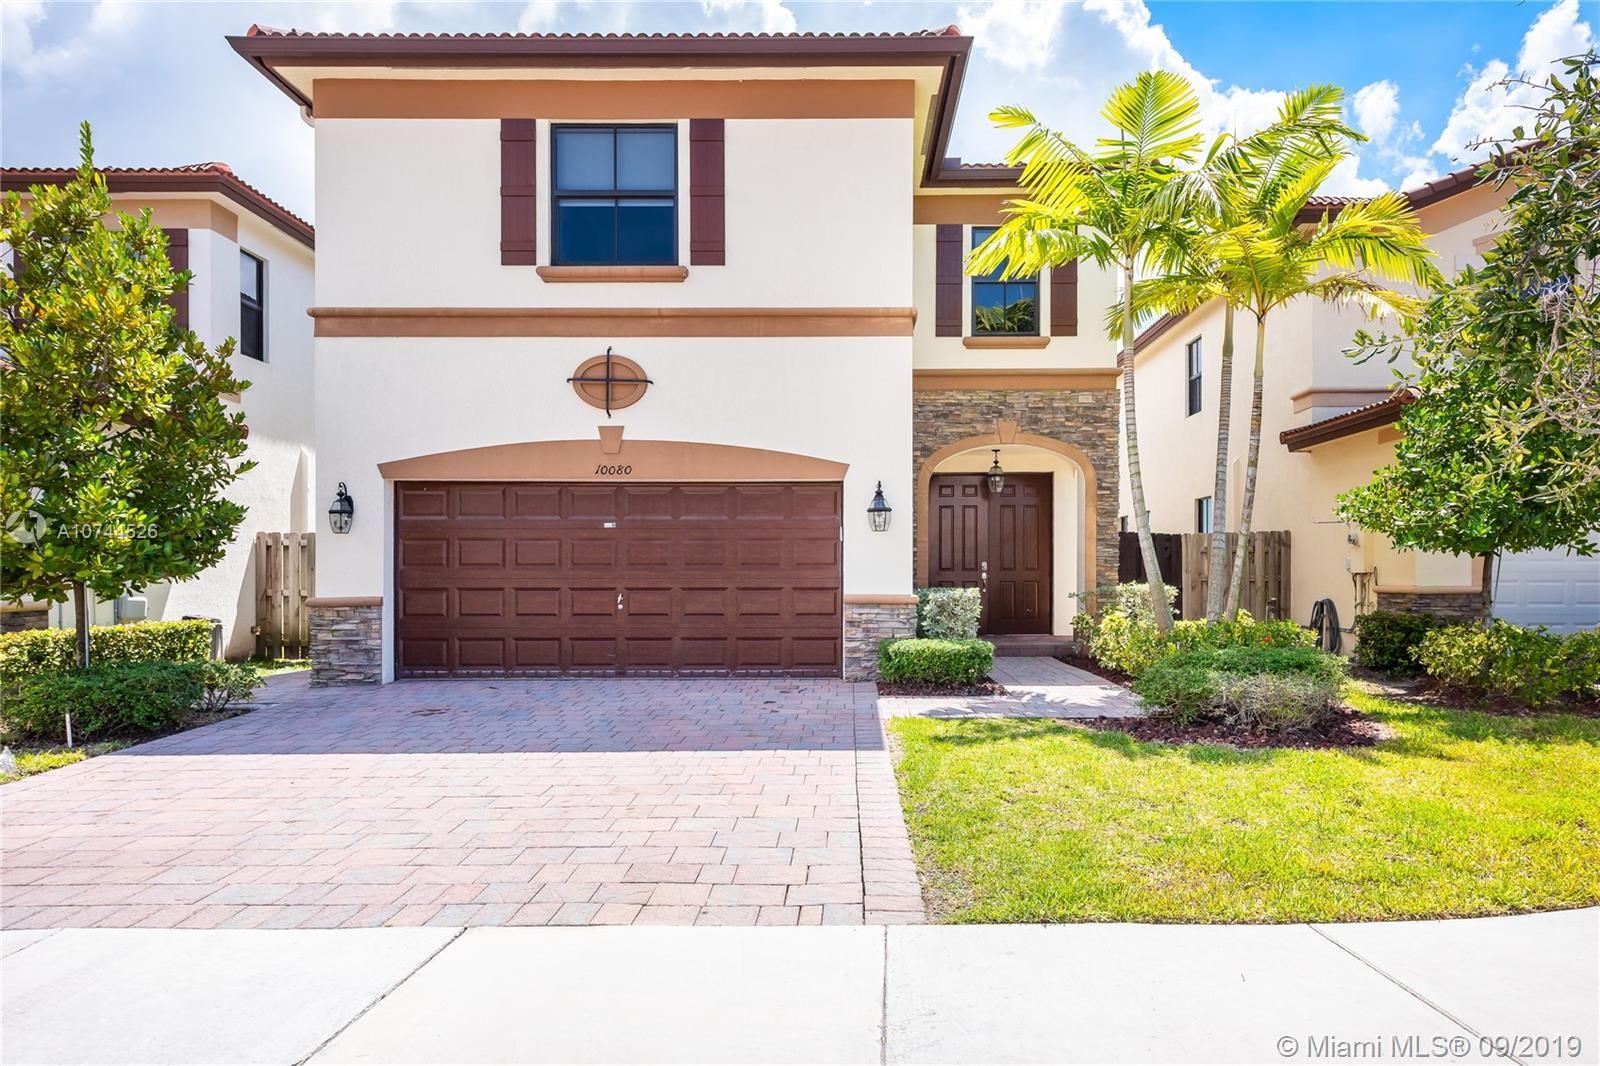 10080 NW 86th Ter, Doral FL 33178